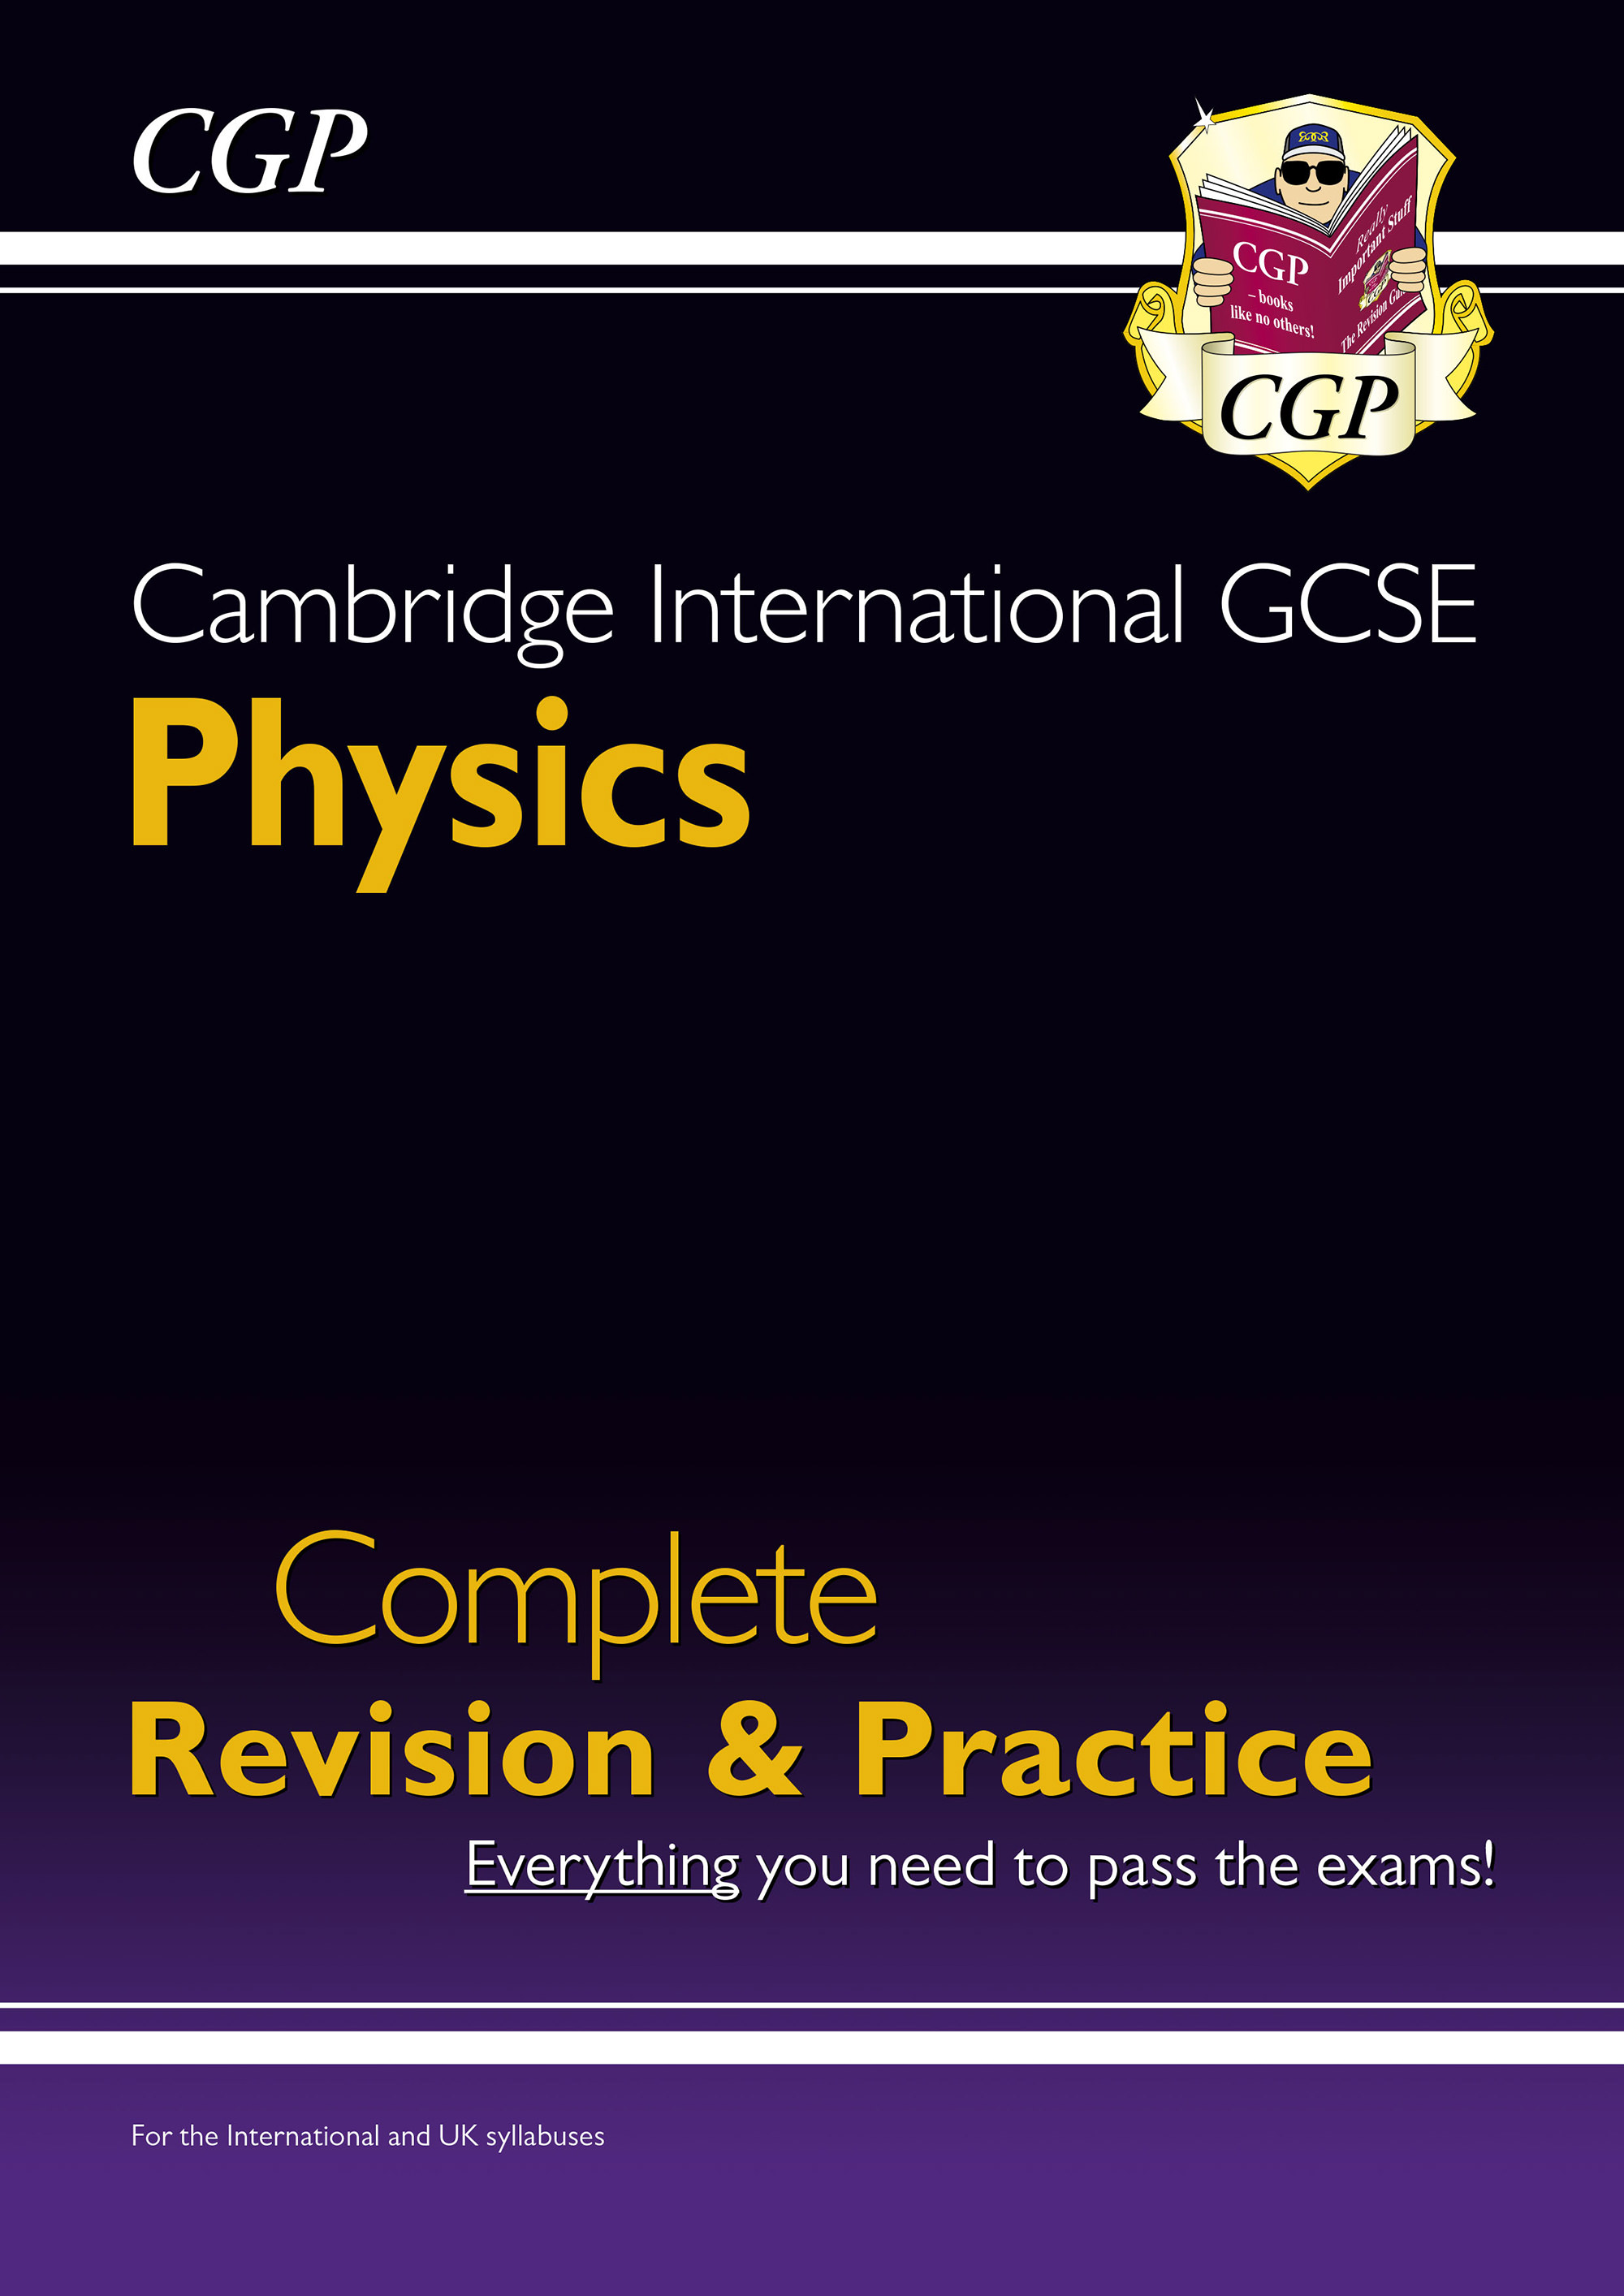 PISI41D - New Cambridge International GCSE Physics Complete Revision & Practice: Core & Extended (On